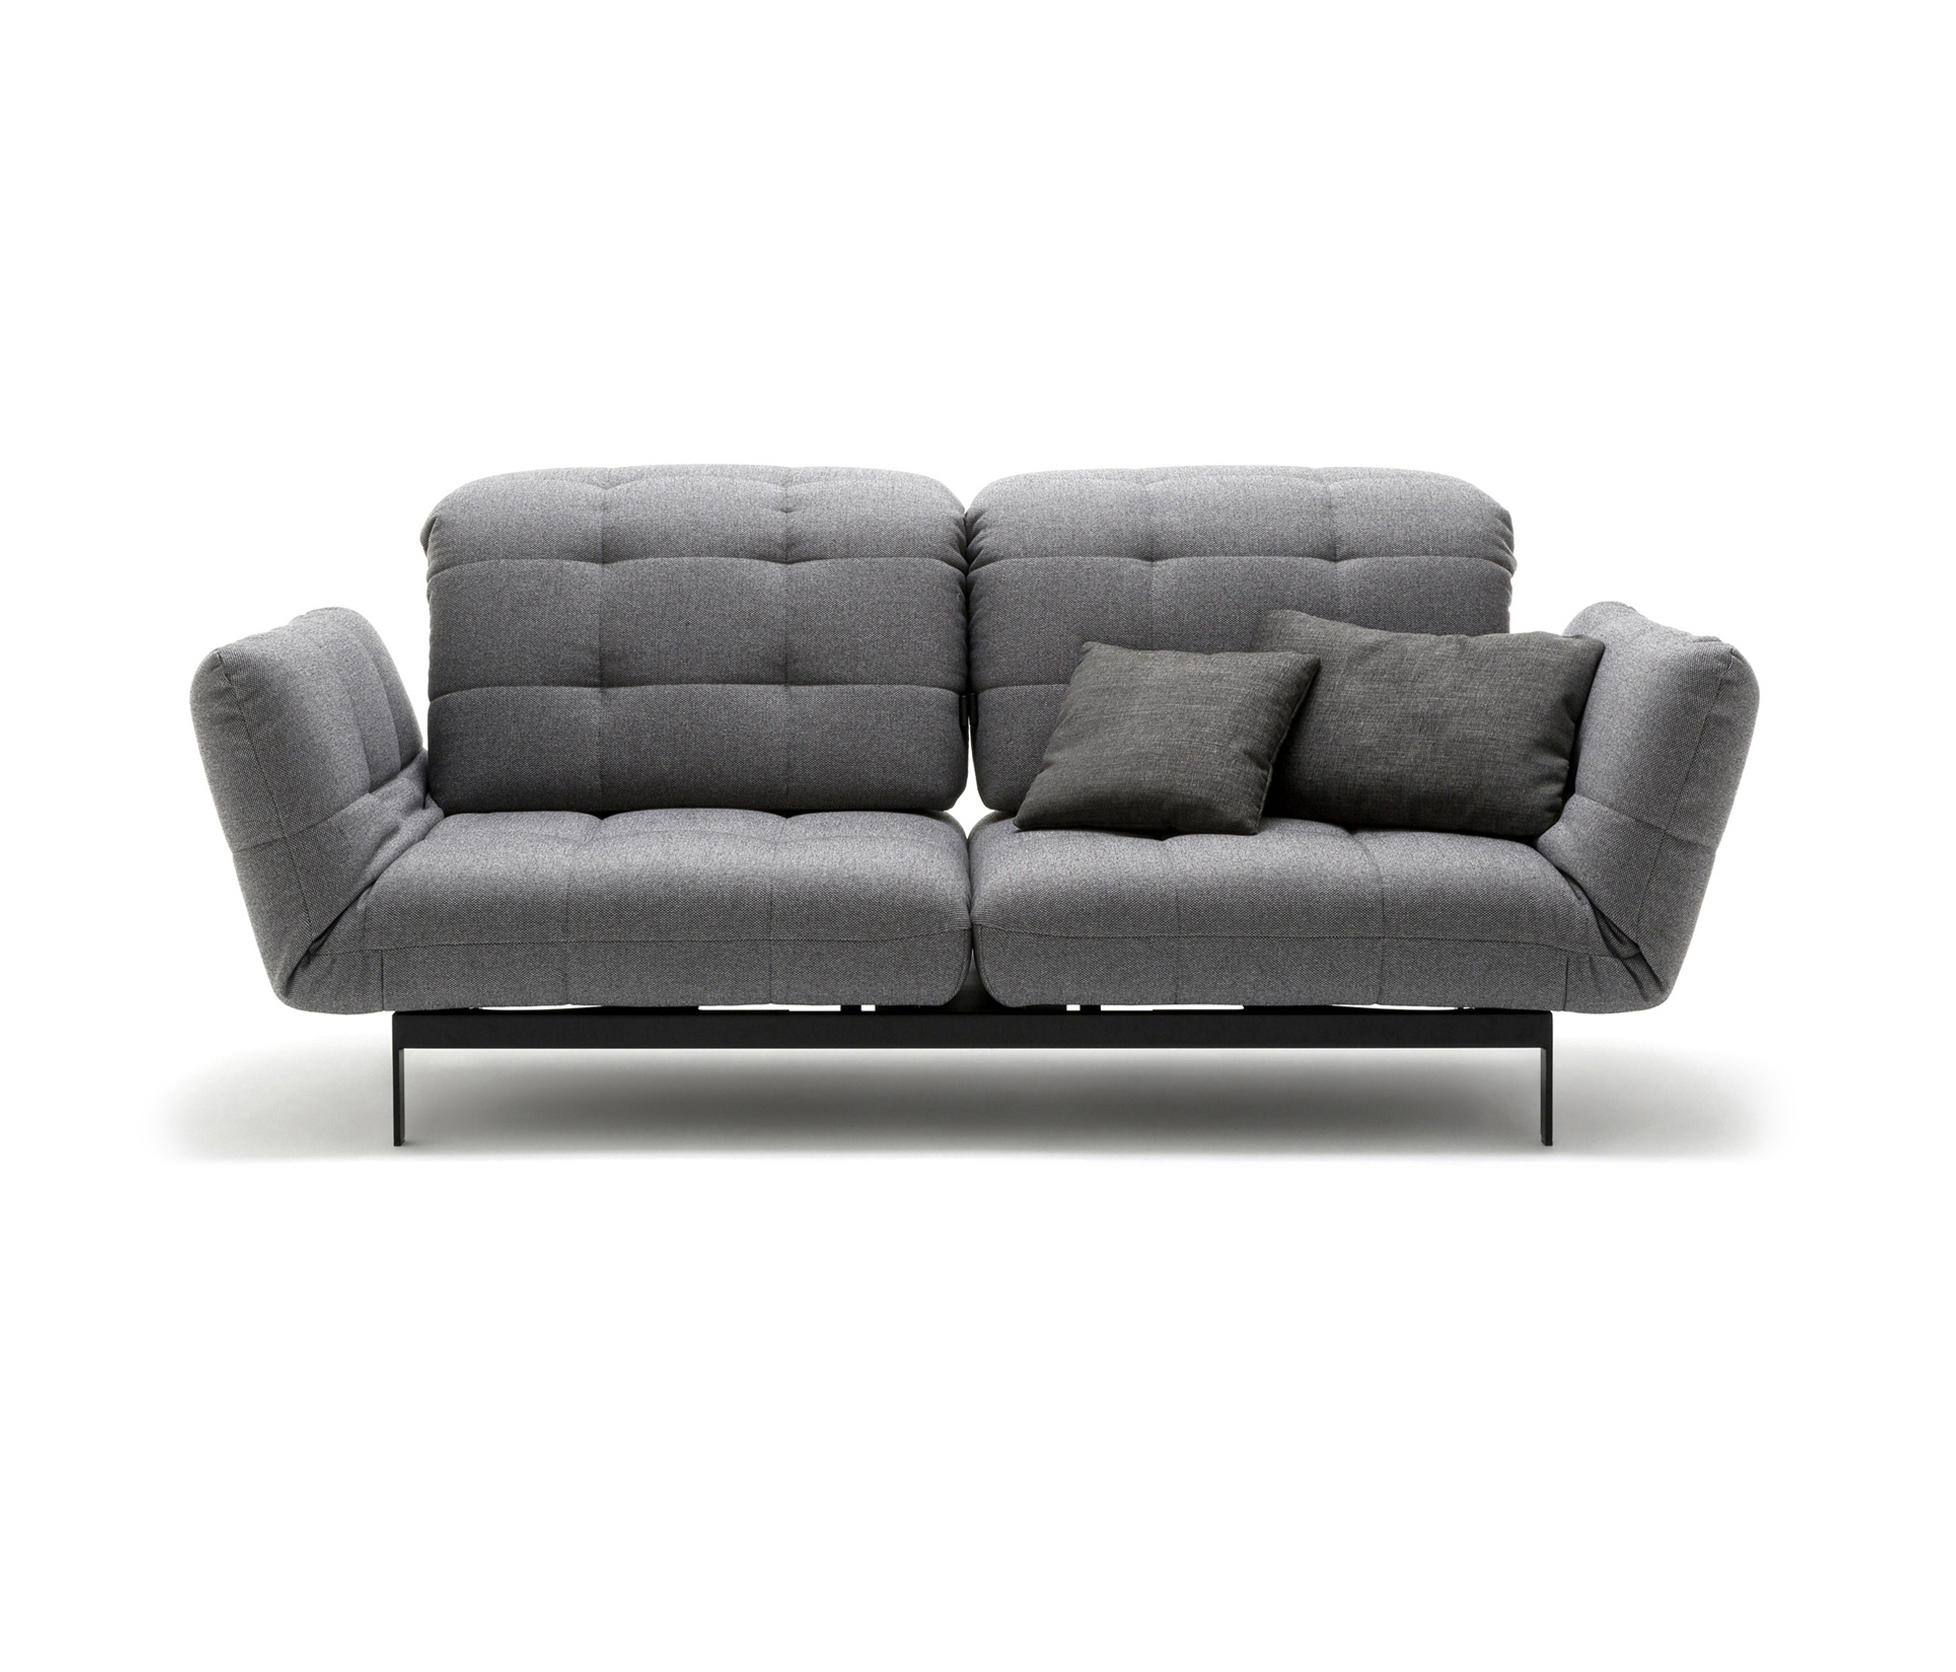 Rolf Benz Sofa 380 Plura Rolf Benz Agio Sofas From Rolf Benz Architonic